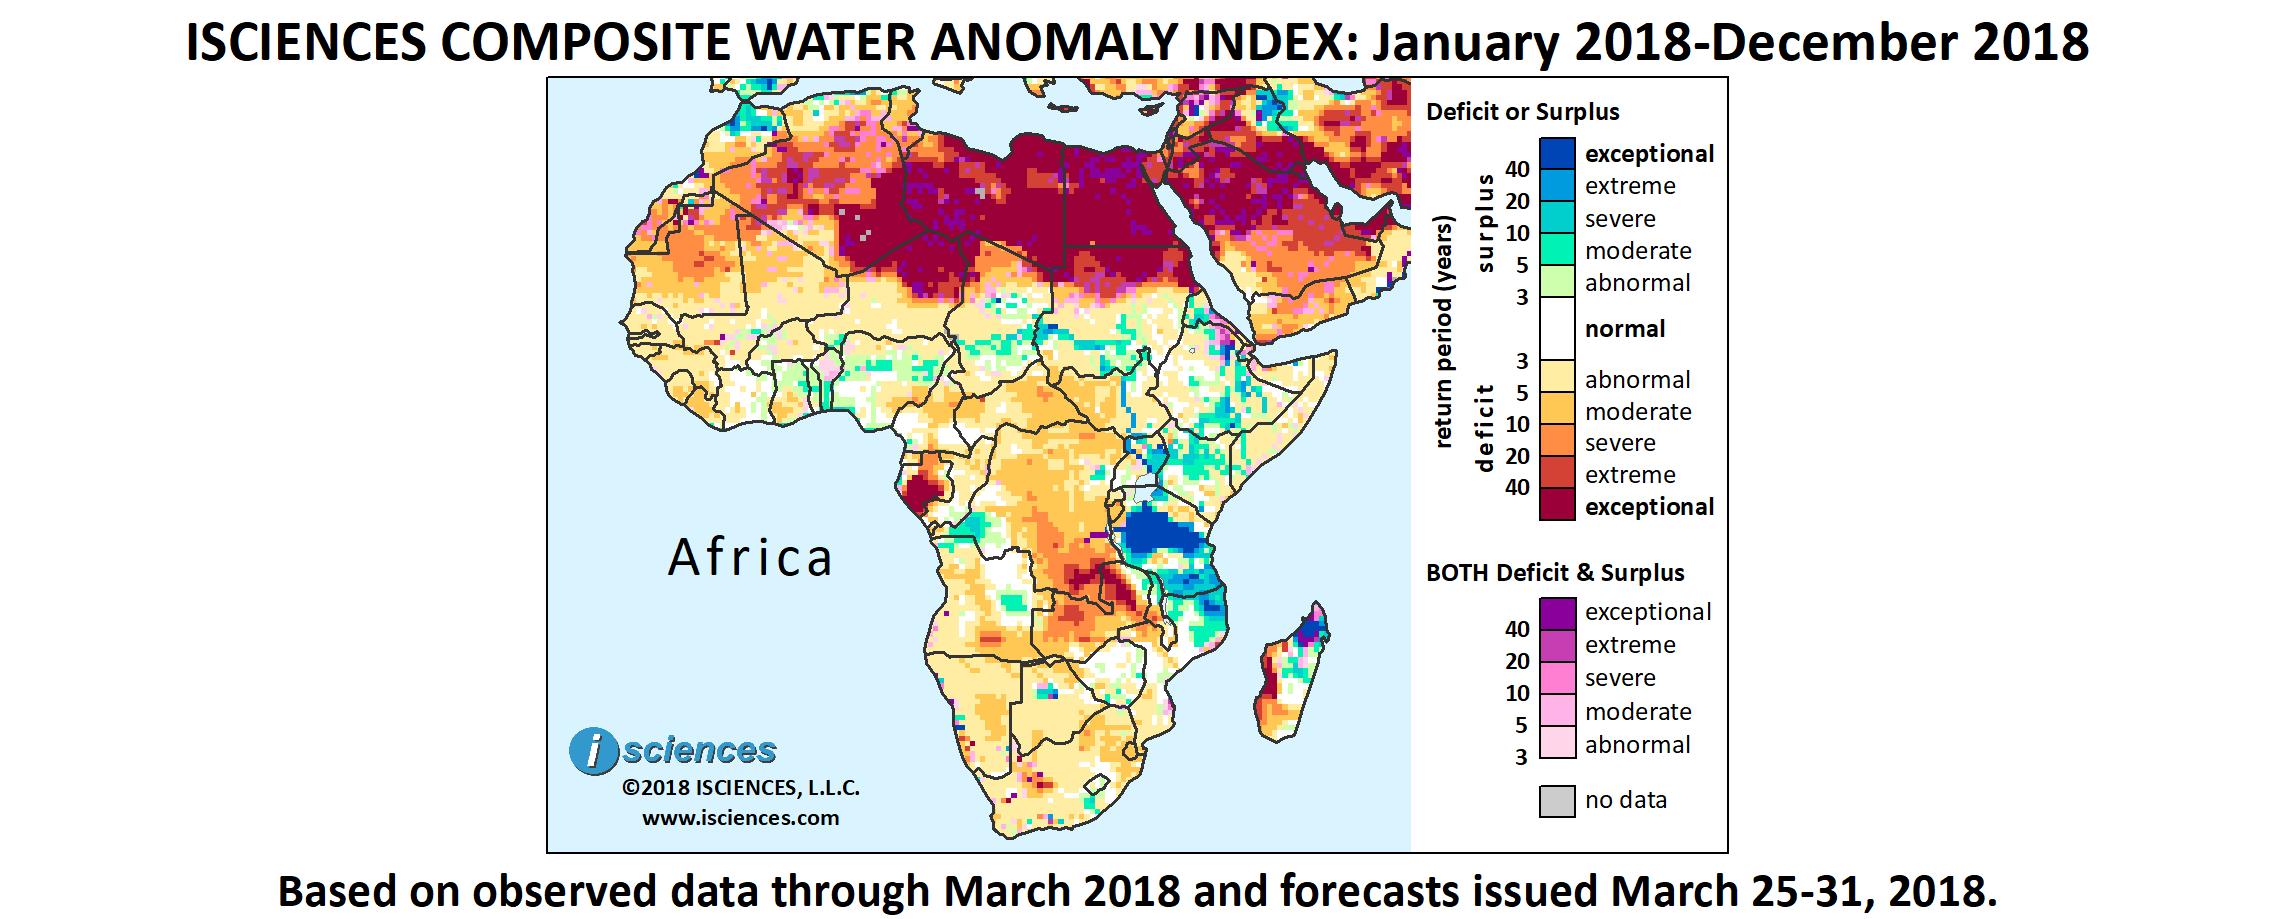 ISciences_Africa_R201803_12mo_twit_pic.png